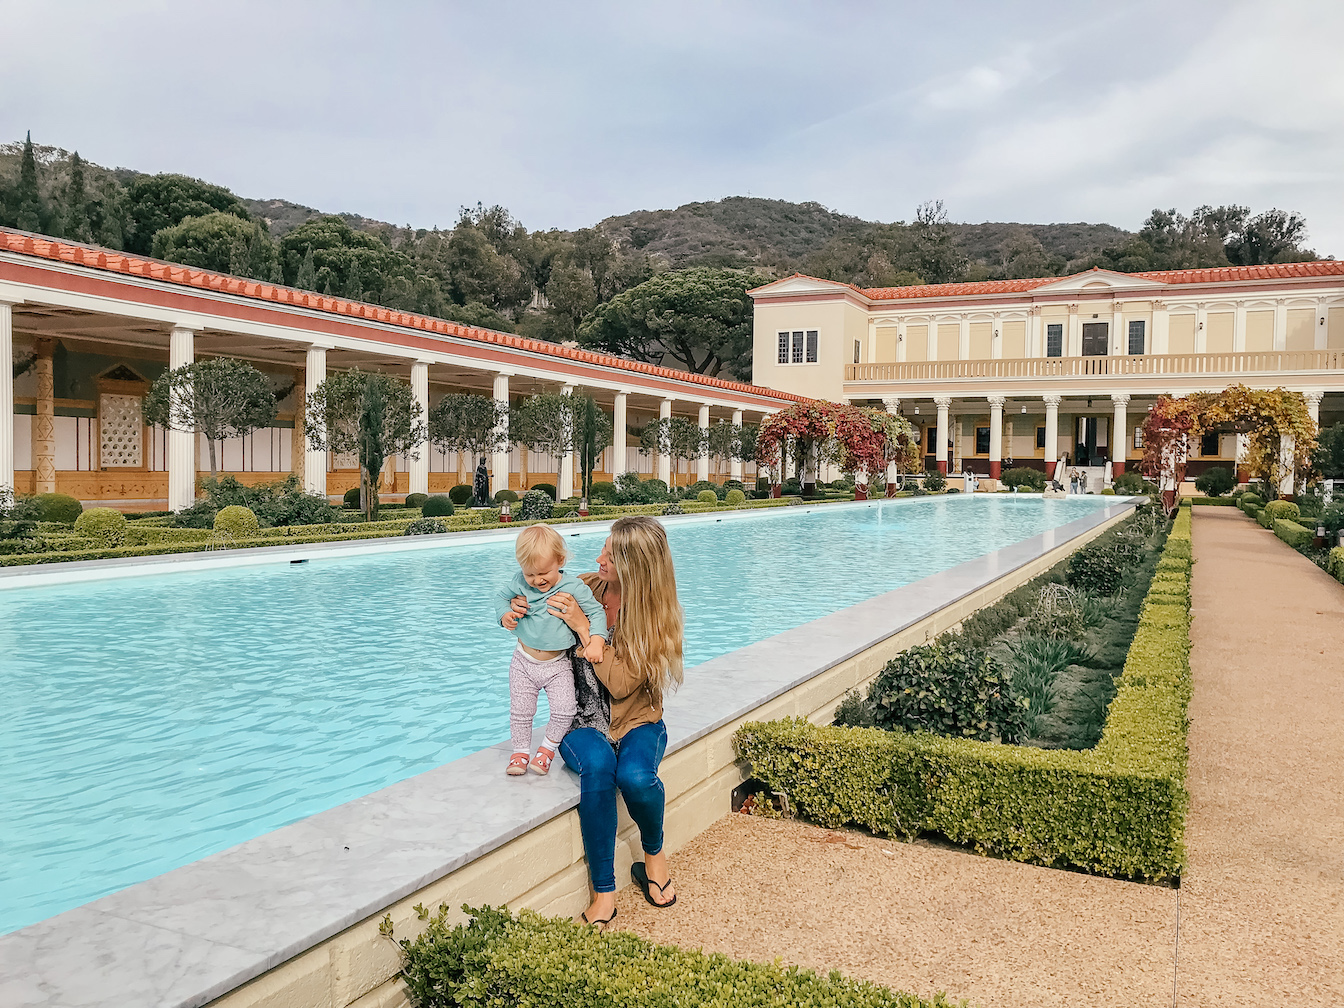 12 Fun Things To Do With Little Kids In The Pacific Palisades, Malibu & Santa Monica